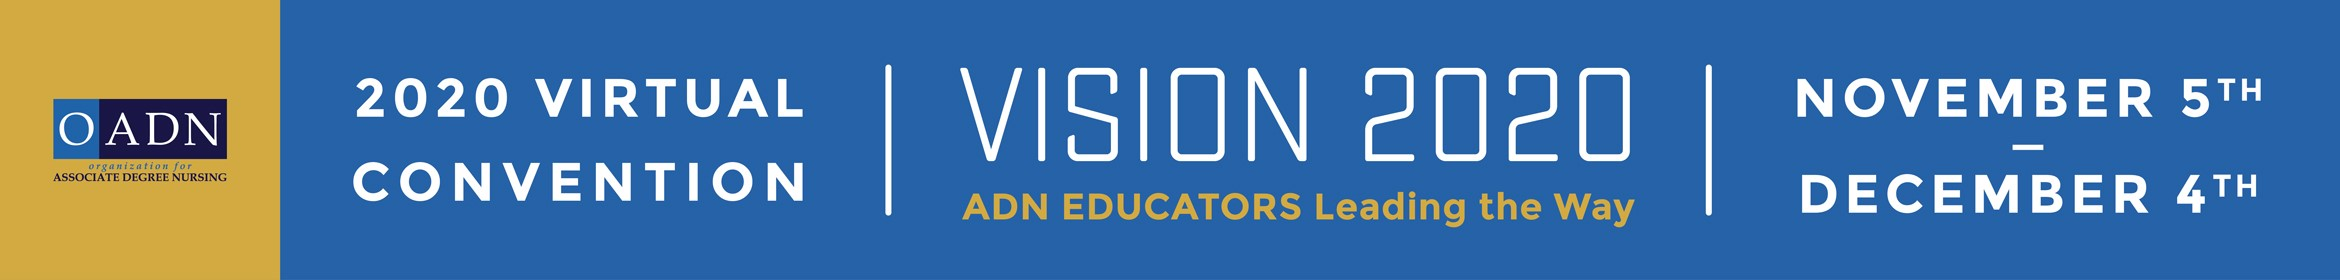 OADN Vision 2020: ADN Educators Lead the Way Main banner